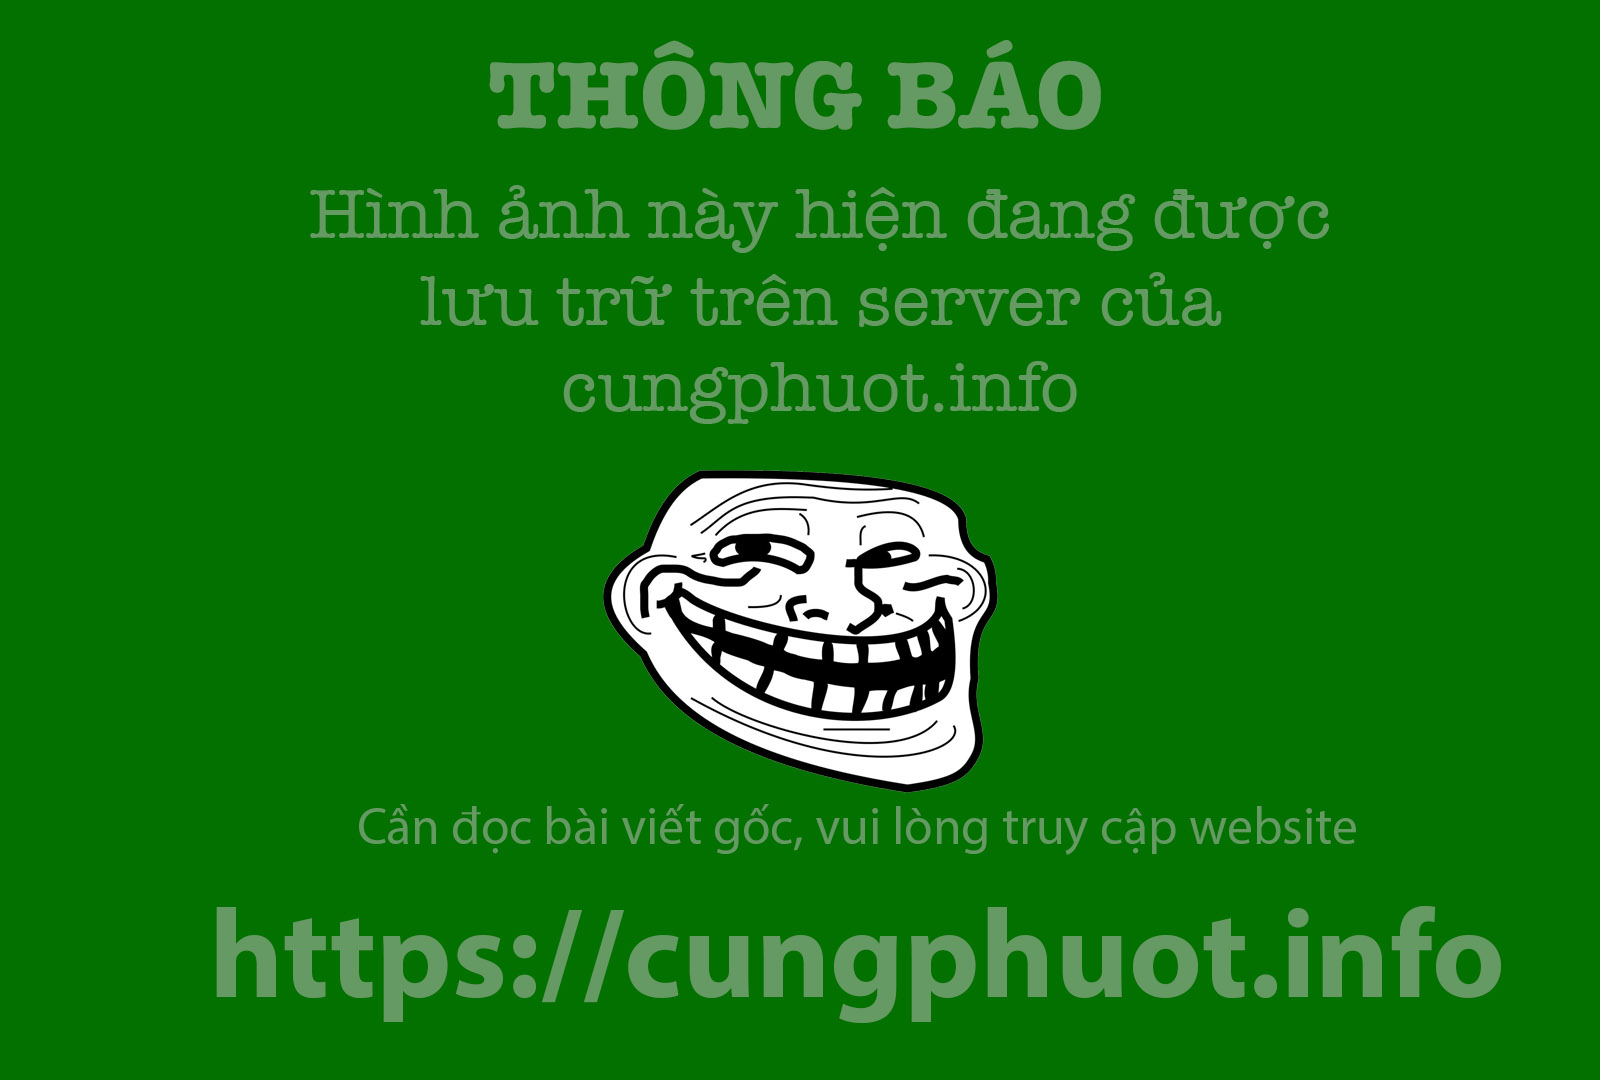 9 cung duong deo hung vi khien tin do du lich muon chinh phuc hinh anh 2